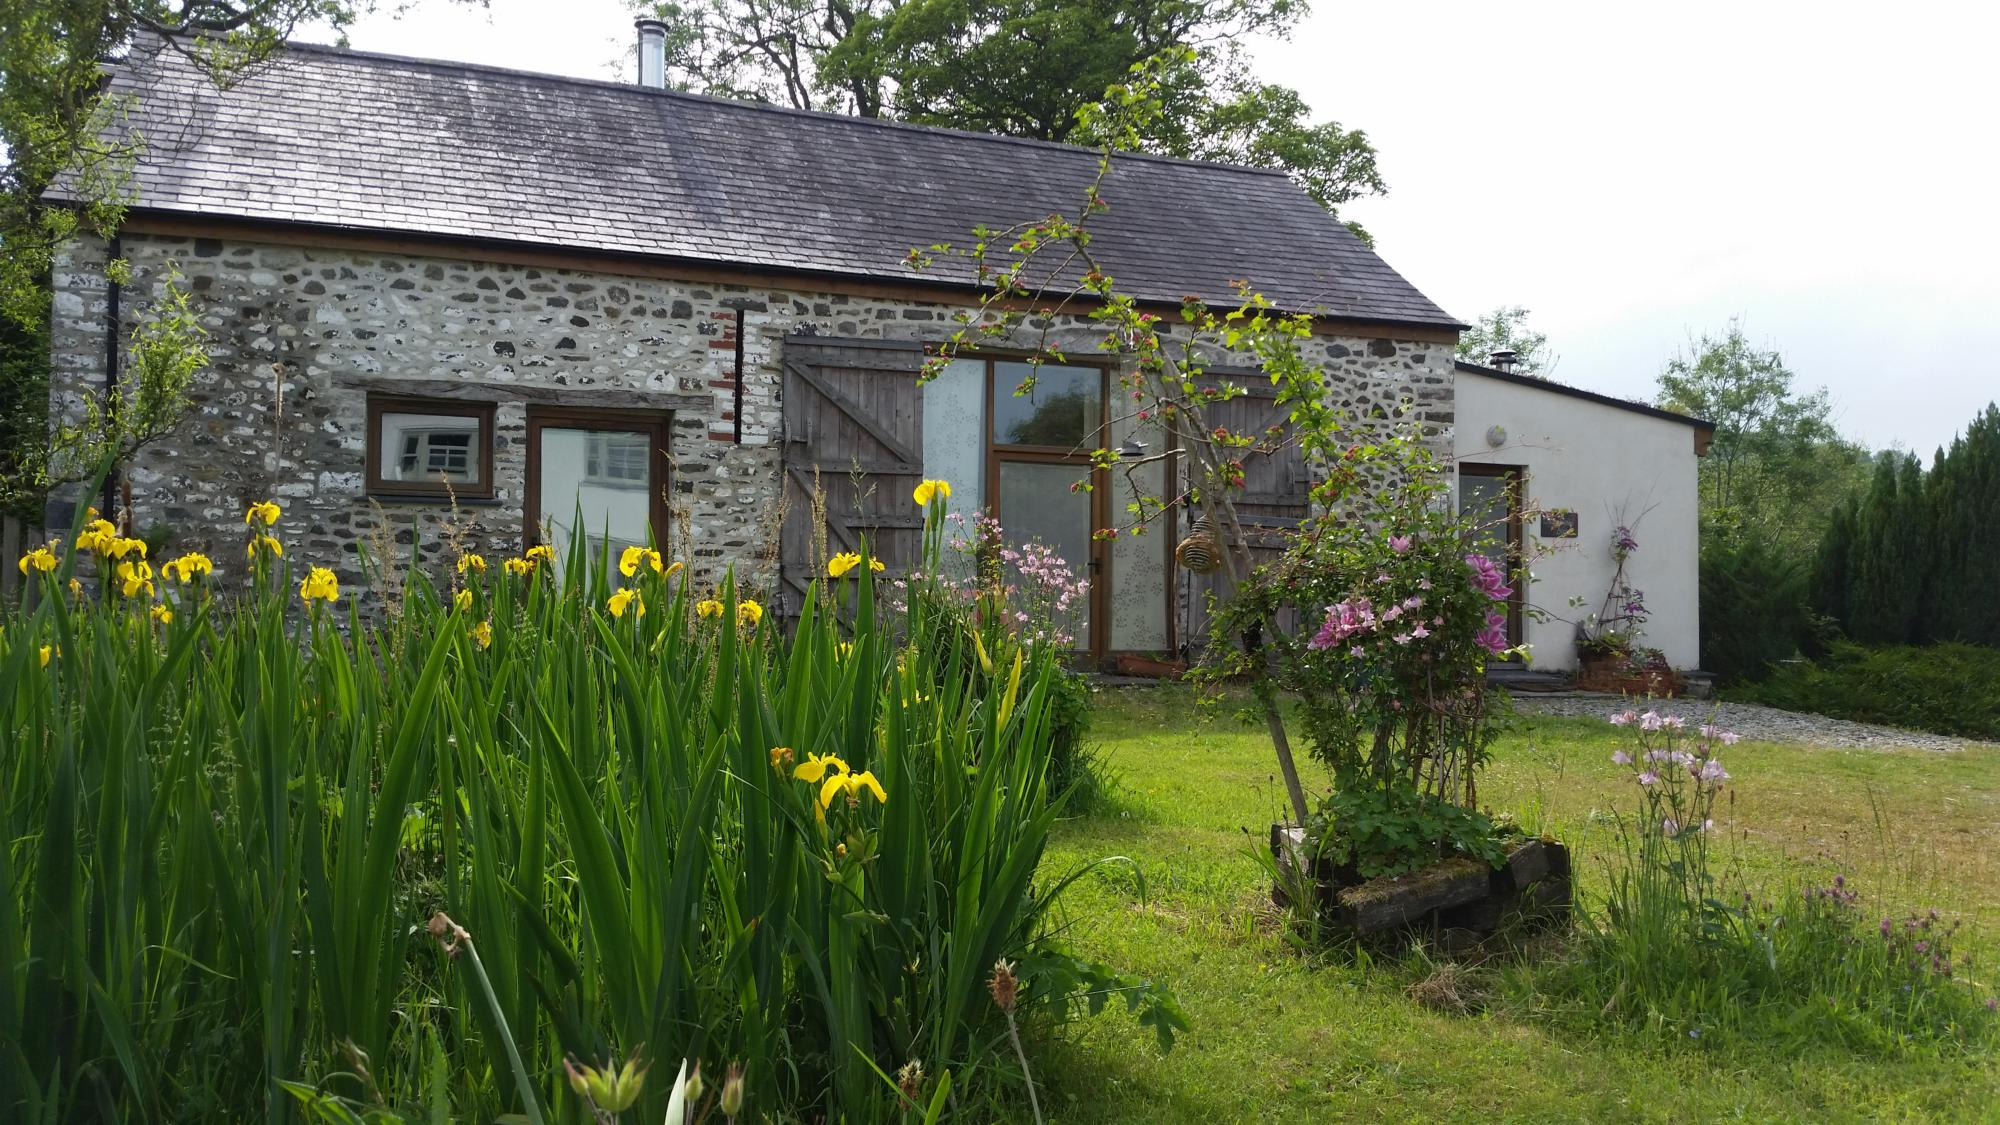 Self-Catering in Wales holidays at Cool Places